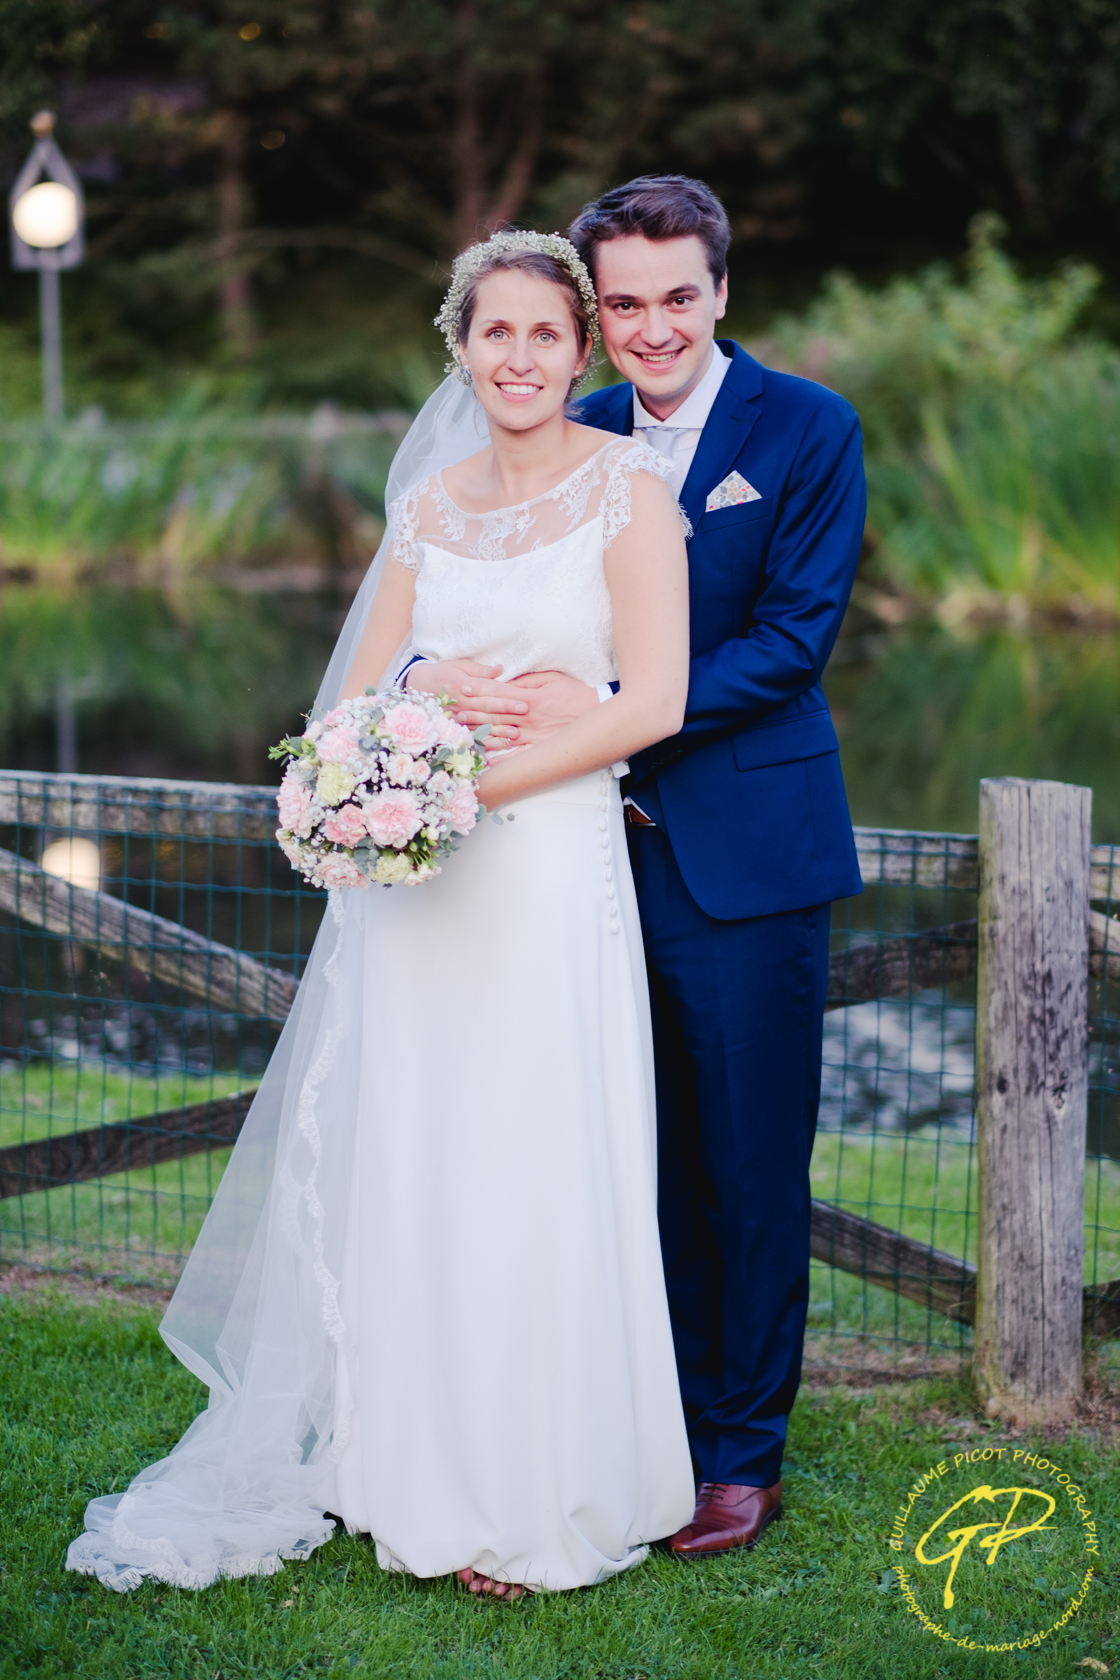 mariage-claire-fontaine-wicres-100-sur-151